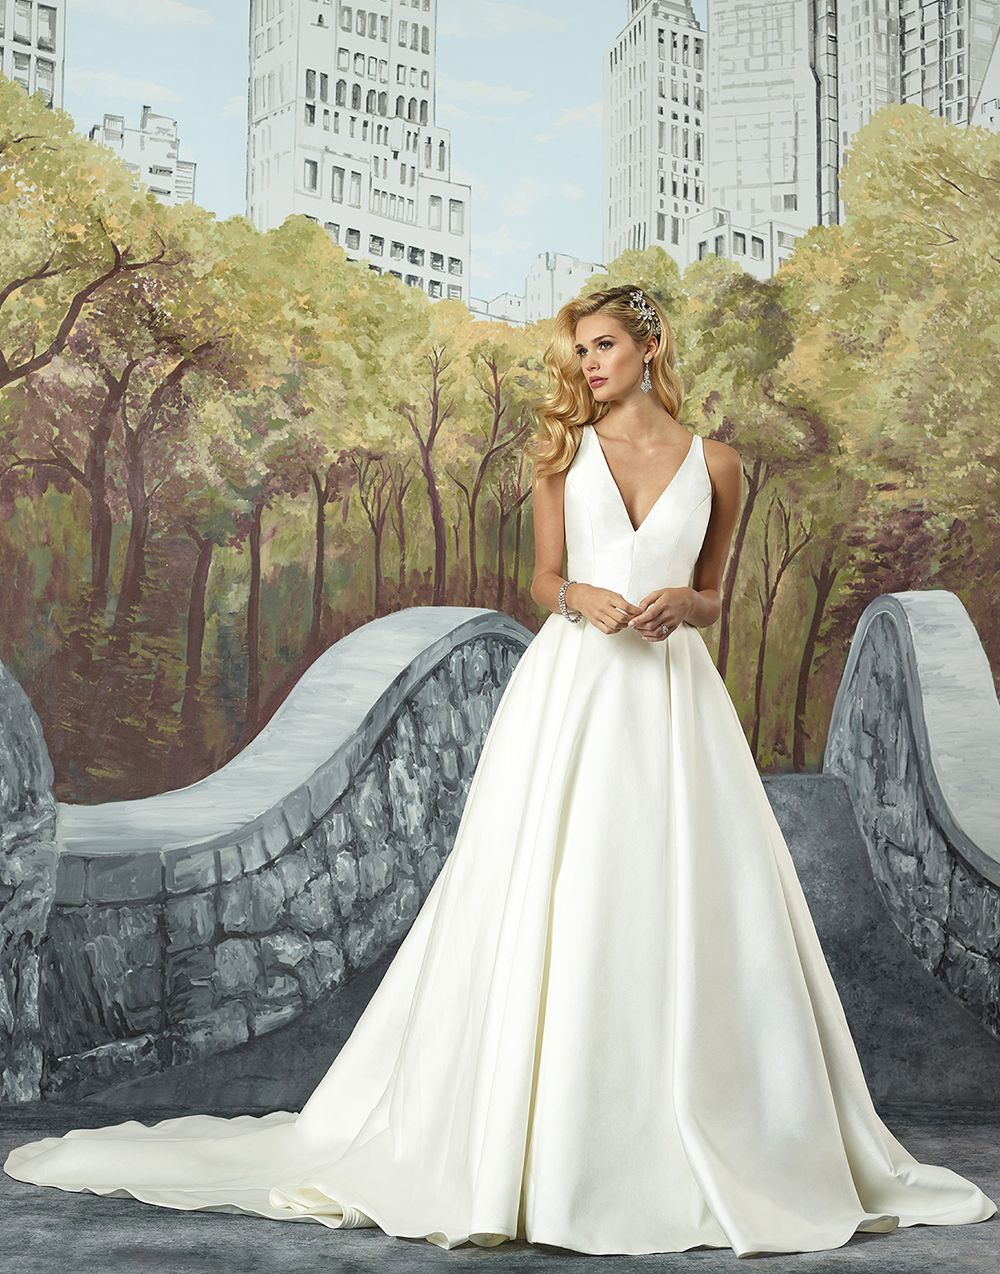 Justin Alexander Wedding Dresses from Alison Kirk Bridal Boutique in Perth  and Dundee available in Aberdeen and throughout Scotland. e23ef0b7d666